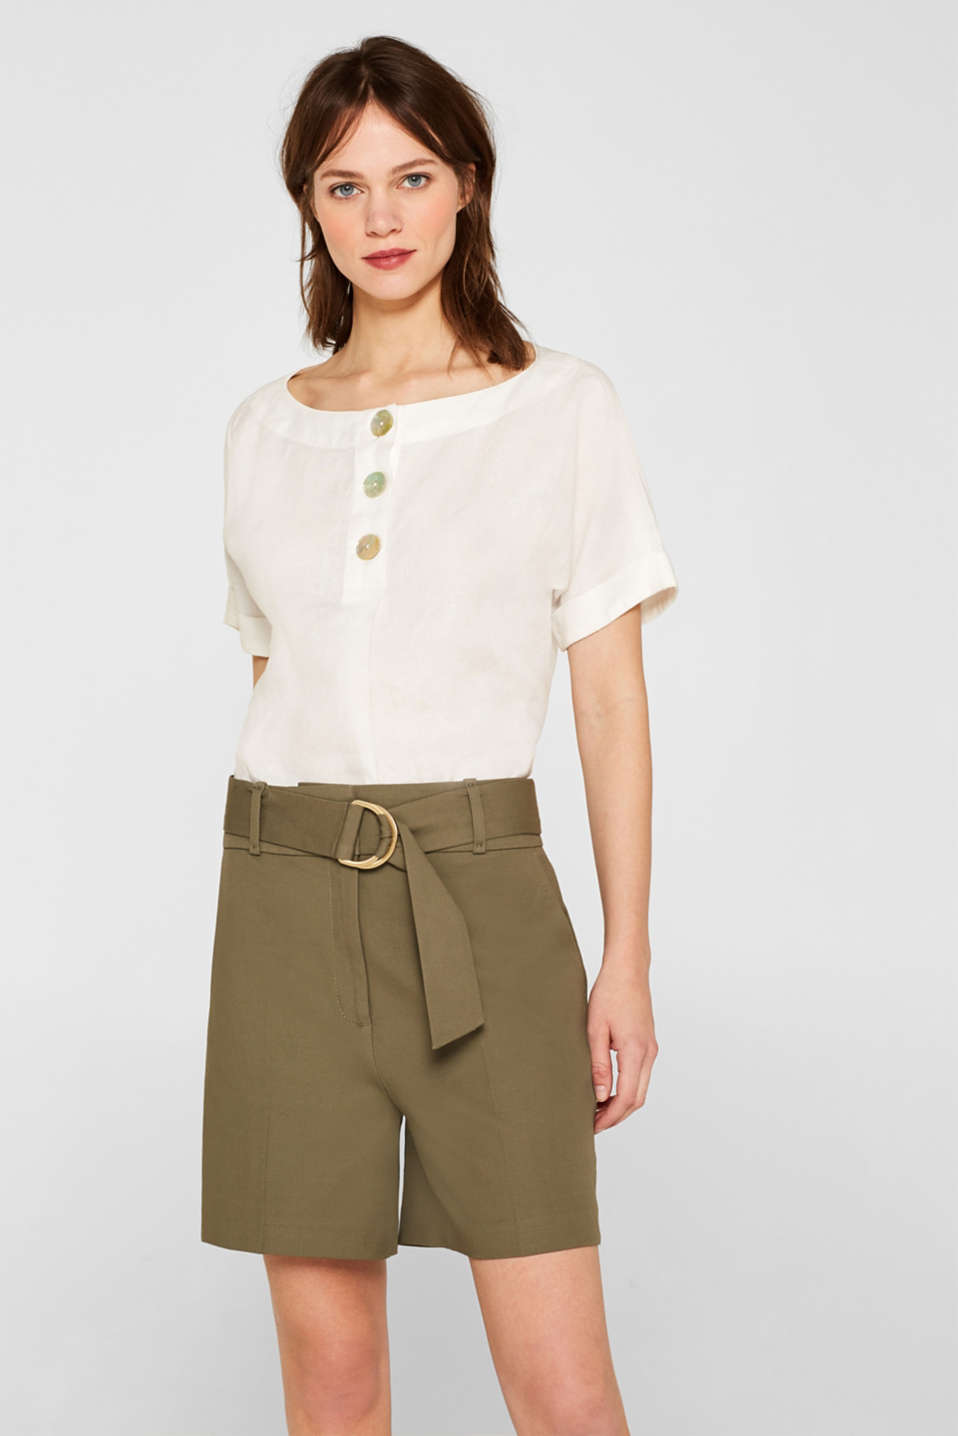 Esprit - 100% linen: Short sleeve blouse with mother-of-pearl buttons